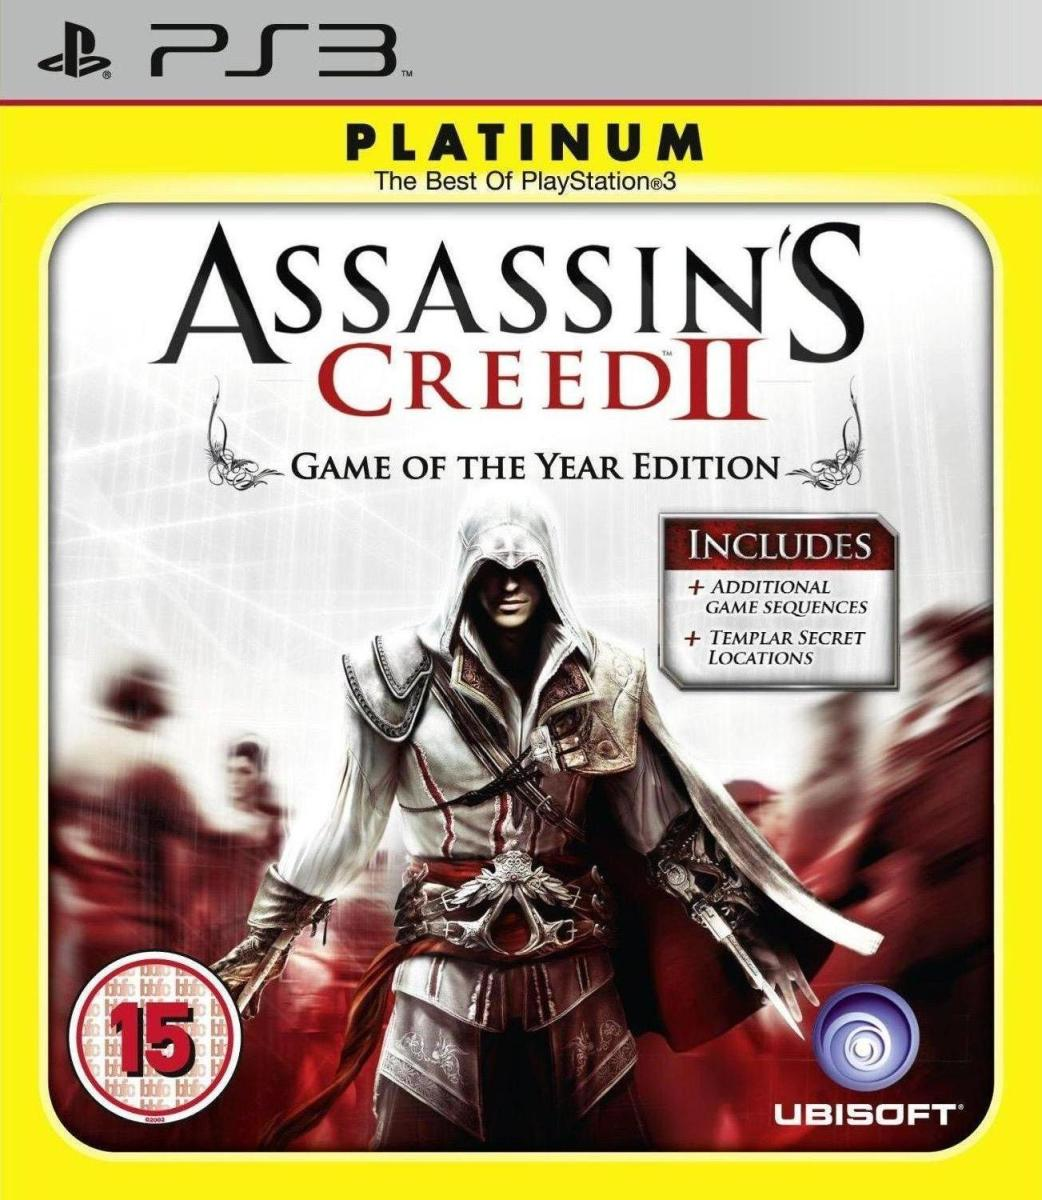 PS3 Assassins Creed 2 Game Of The Year Edition